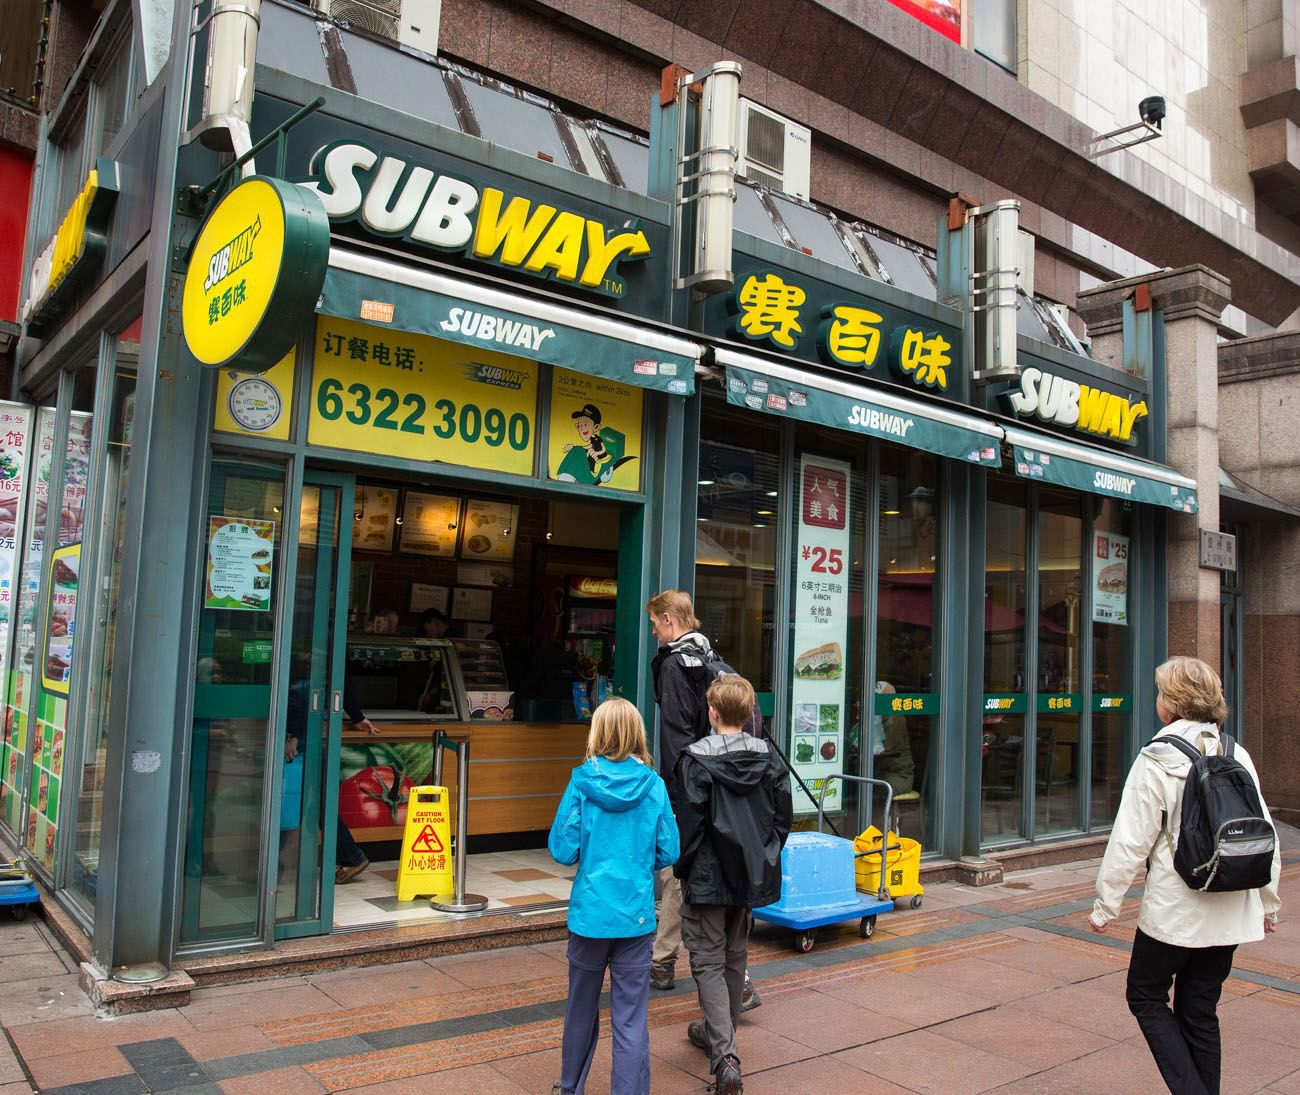 Subway in Shanghai